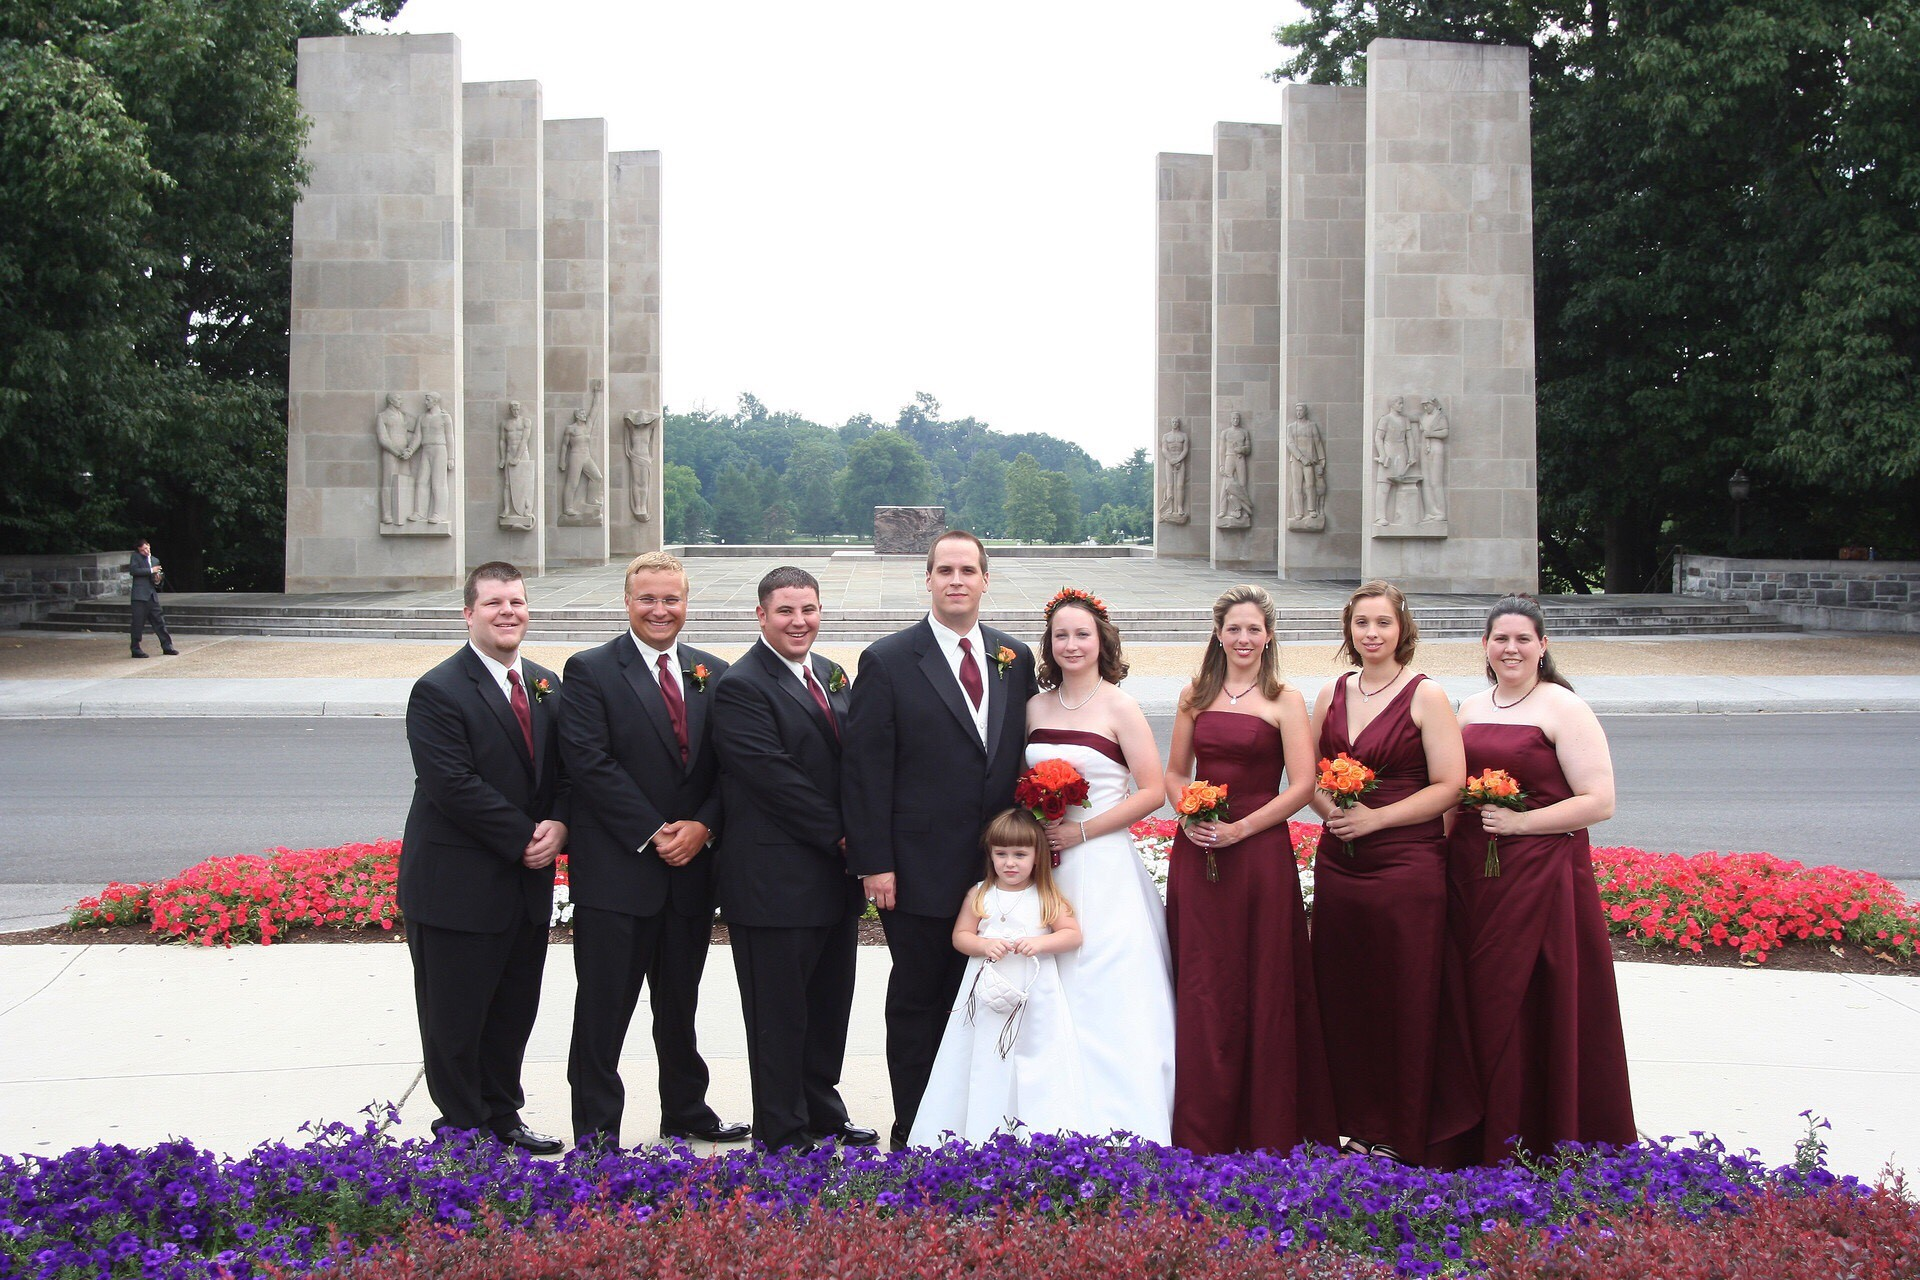 Yep, this is an actual photo from my wedding. Everyone was in The Marching Virginians and Kappa Kappa Psi/Tau Beta Sigma except the groomsman on the far left and the flower girl (who is now a teenager and has marched with the MVs at Band Day the last two years)